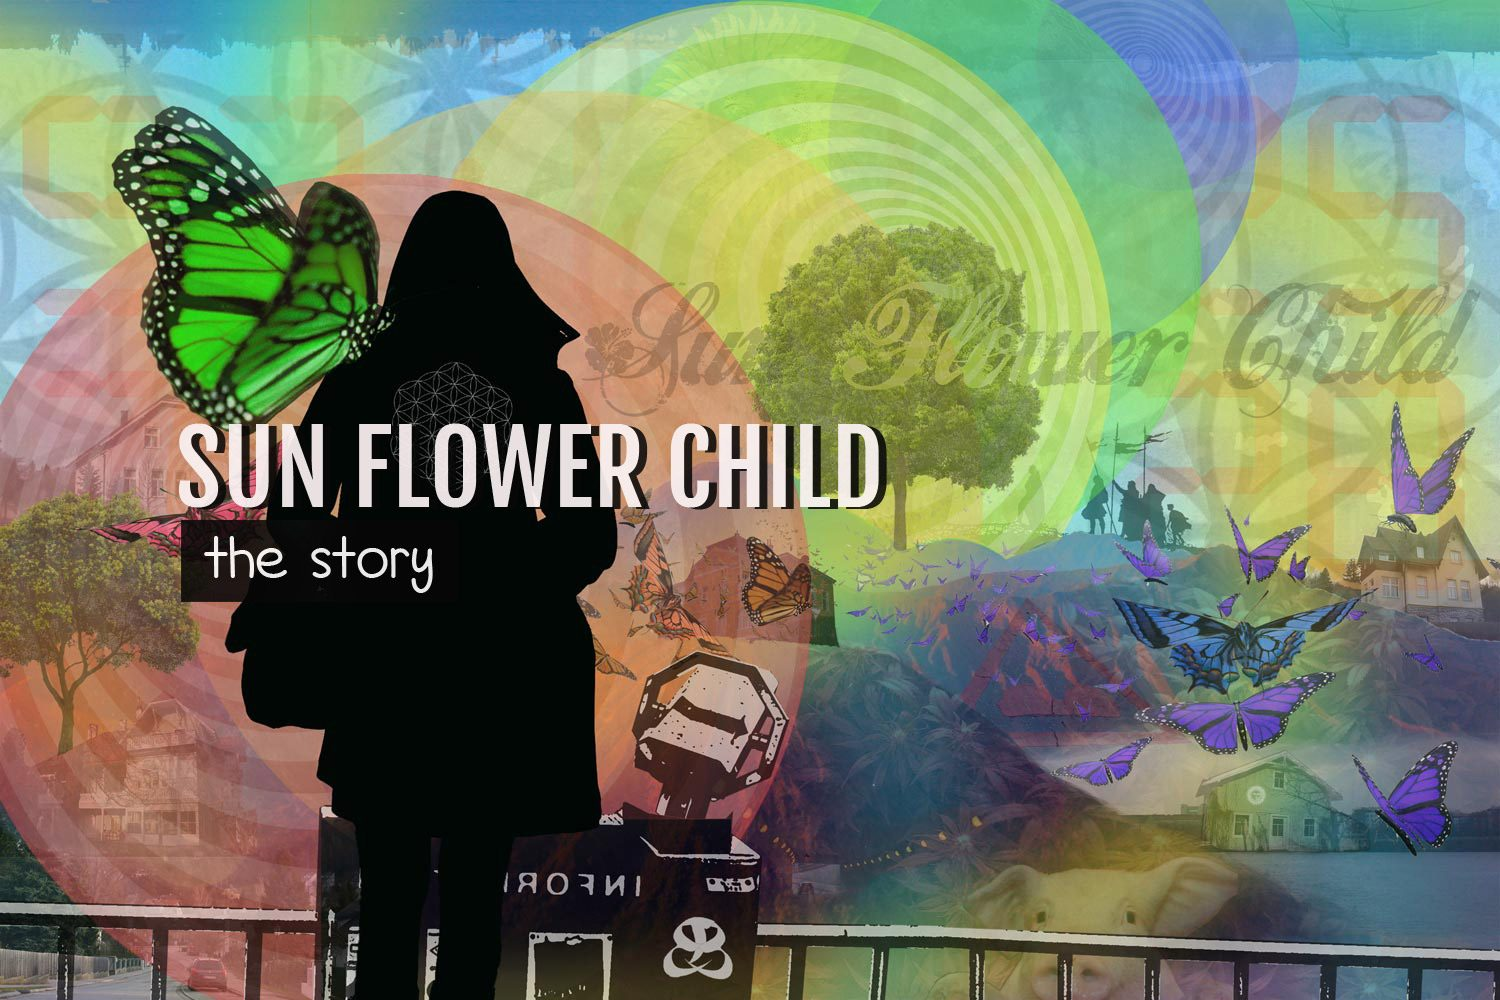 DIGITAL ART AMSTERDAM - Art Story SUN FLOWER CHILD